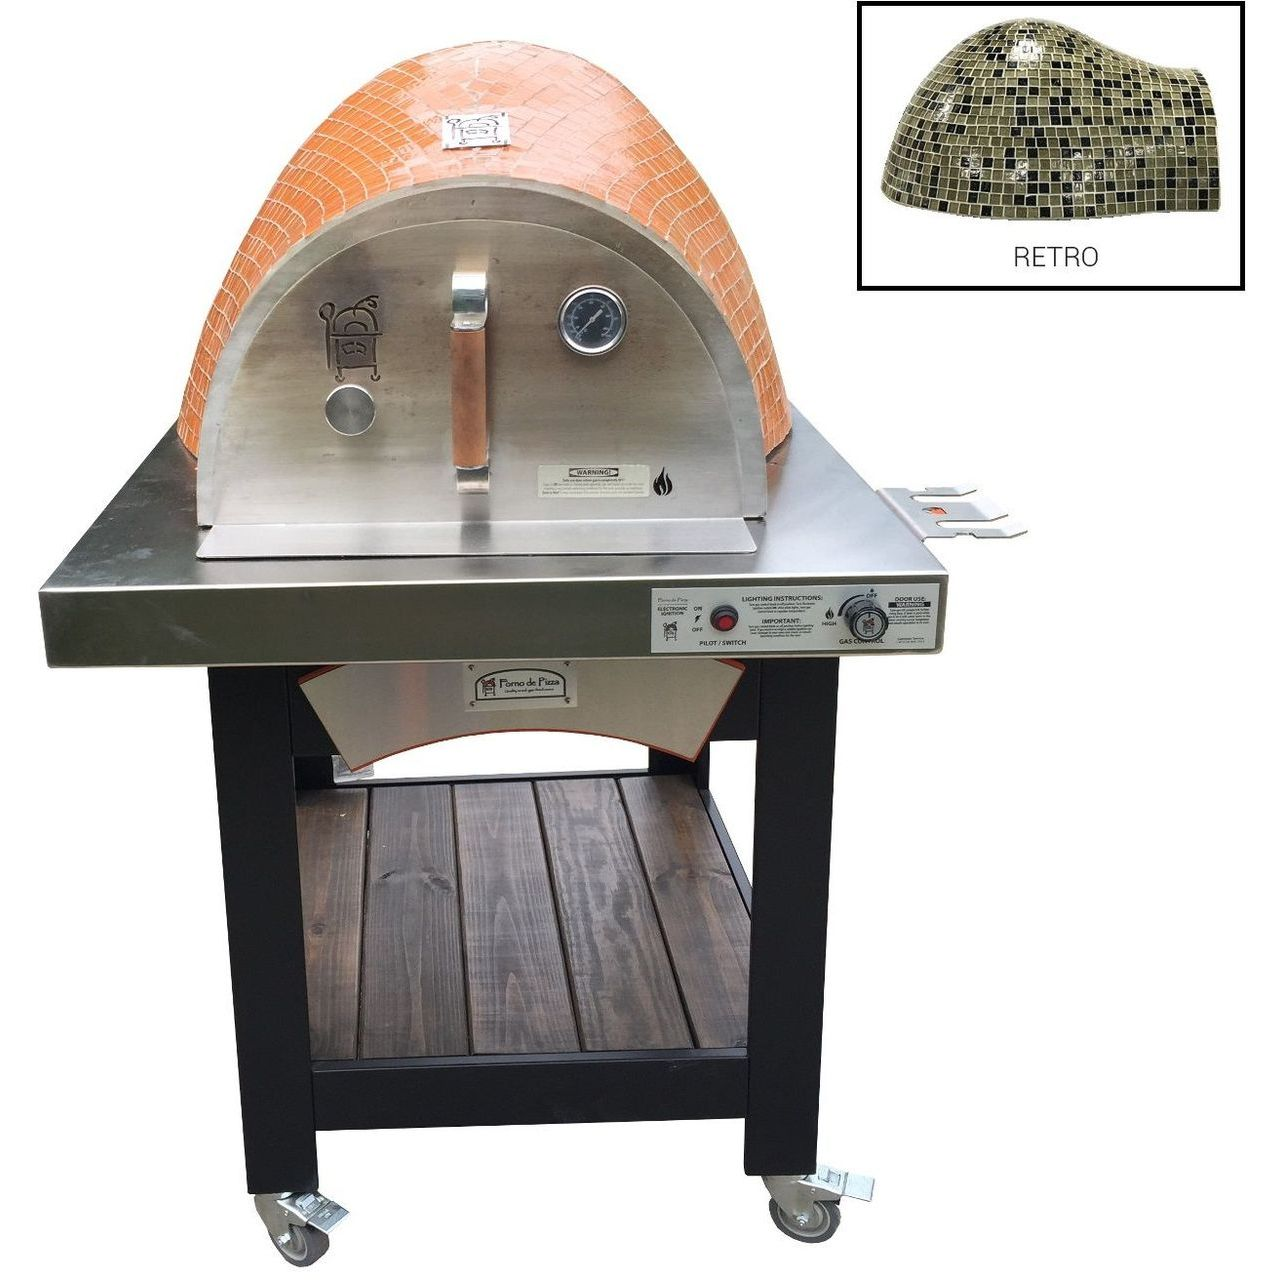 HPC Forno Hybrid Gas/Wood Oven With EI & Cart in Retro - LP